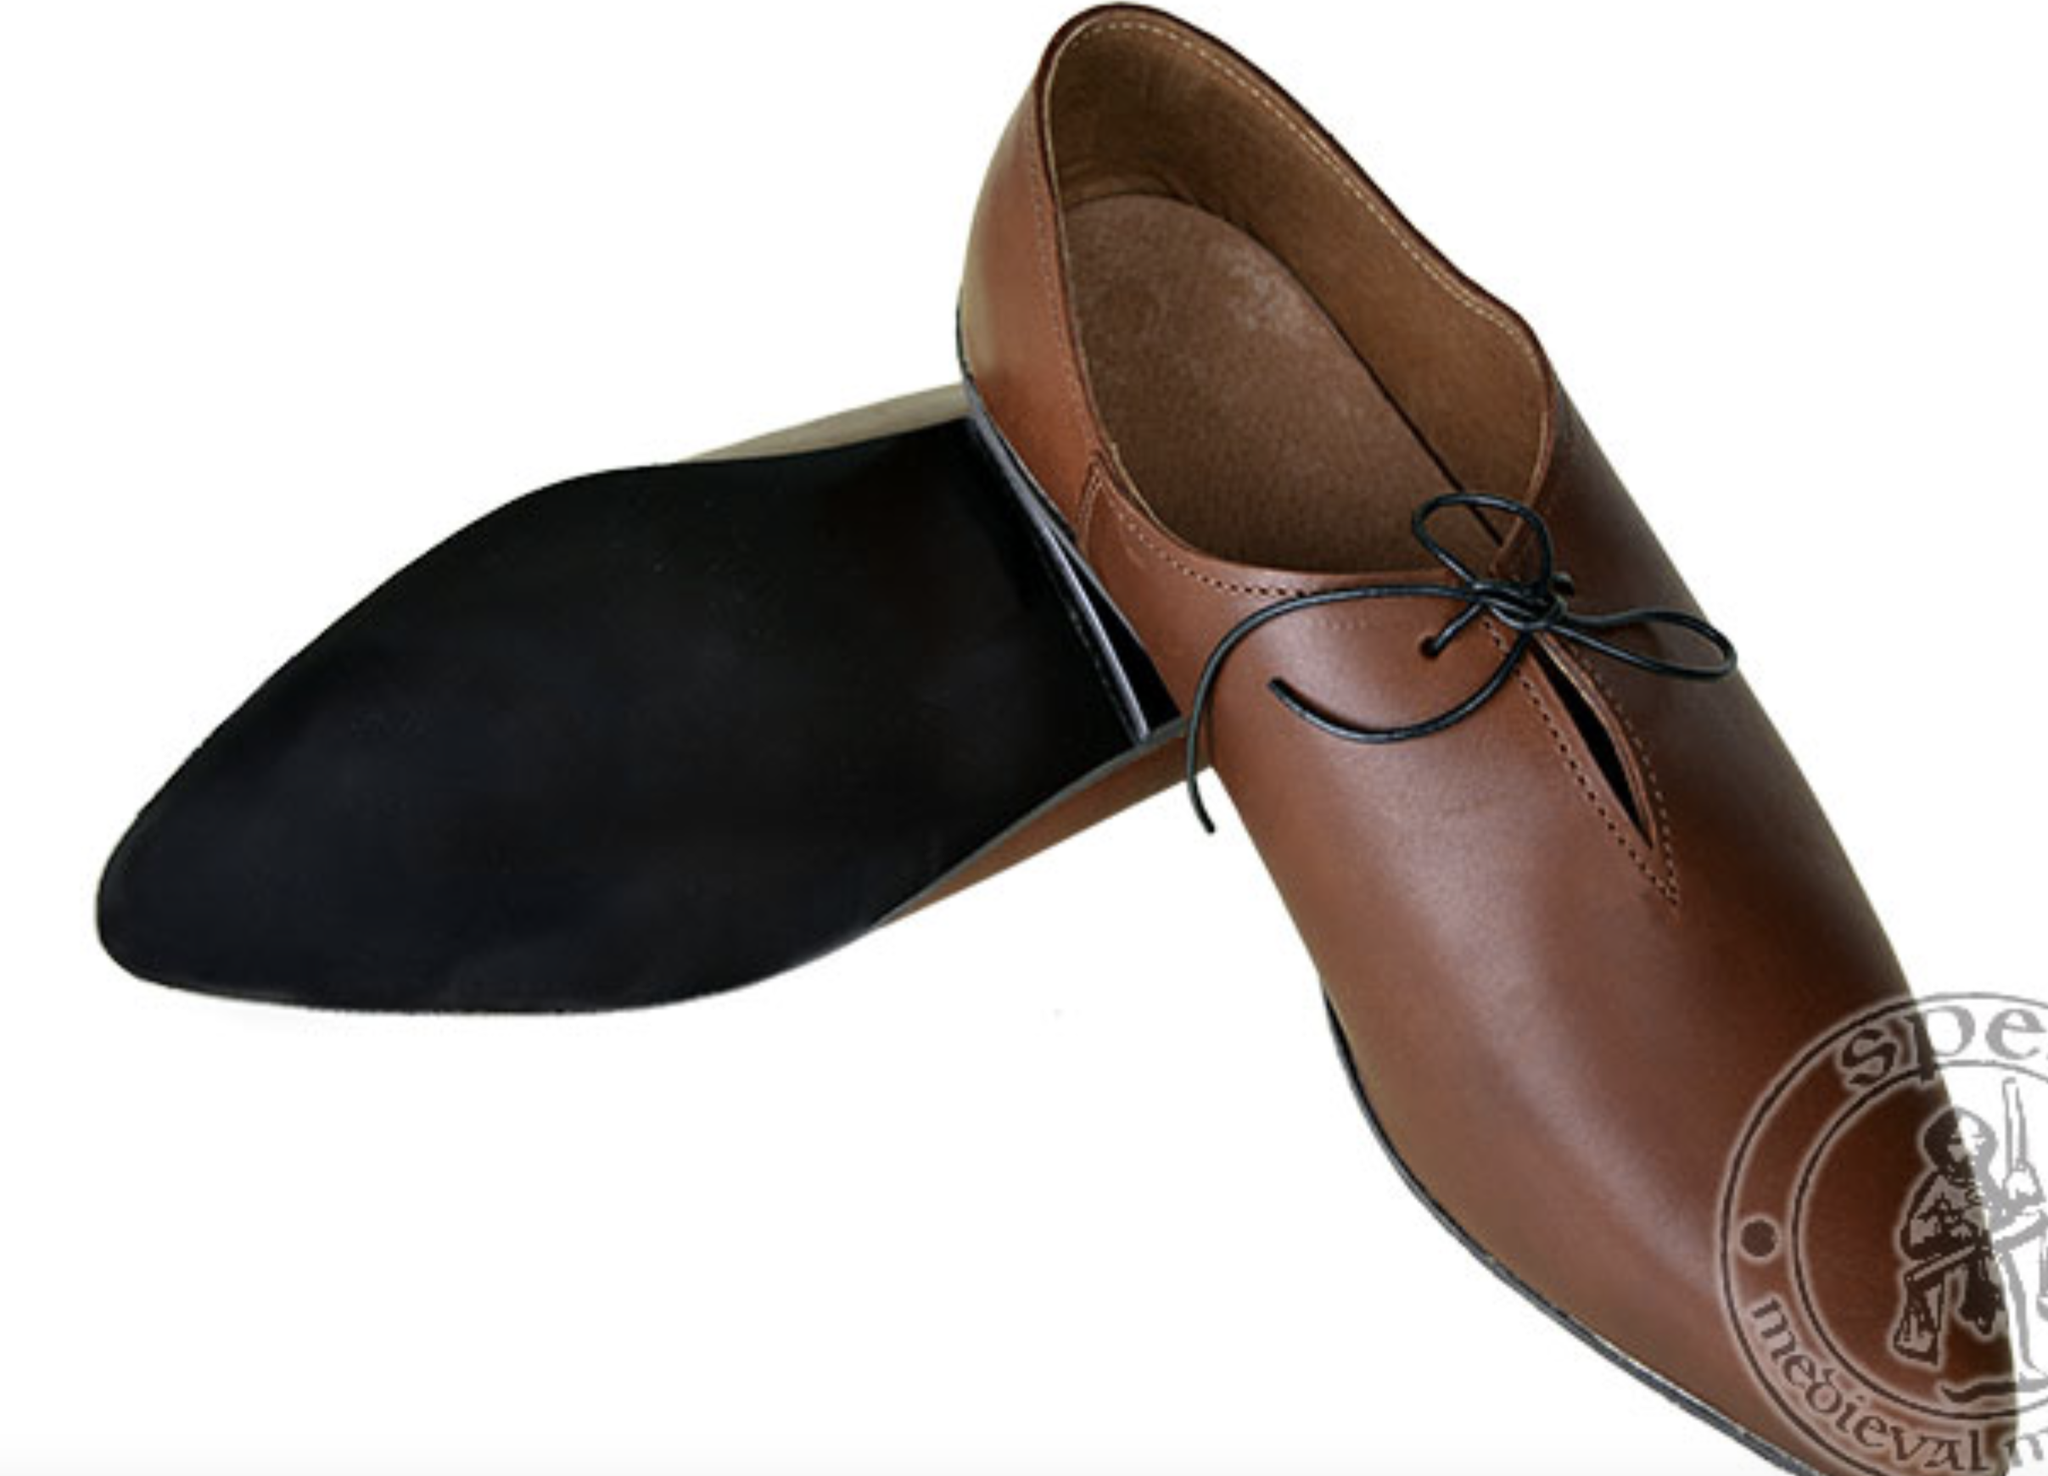 Chaussures Homme : MS1356 - 79 €